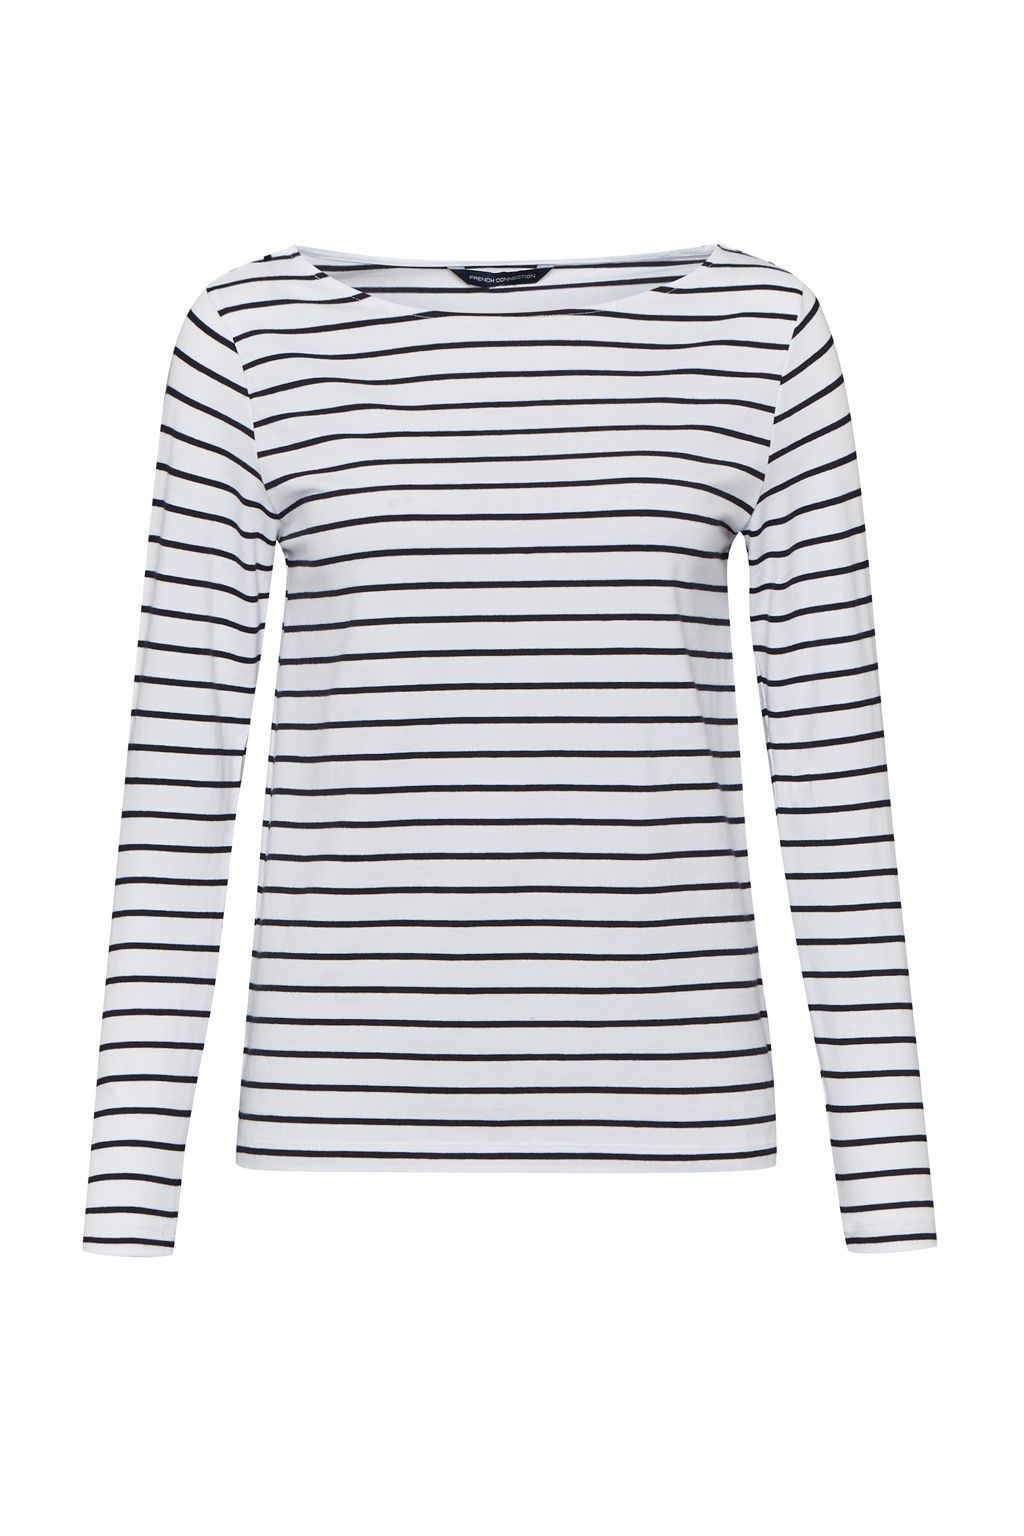 French Connection Tim Tim Long Sleeve Striped Top, White